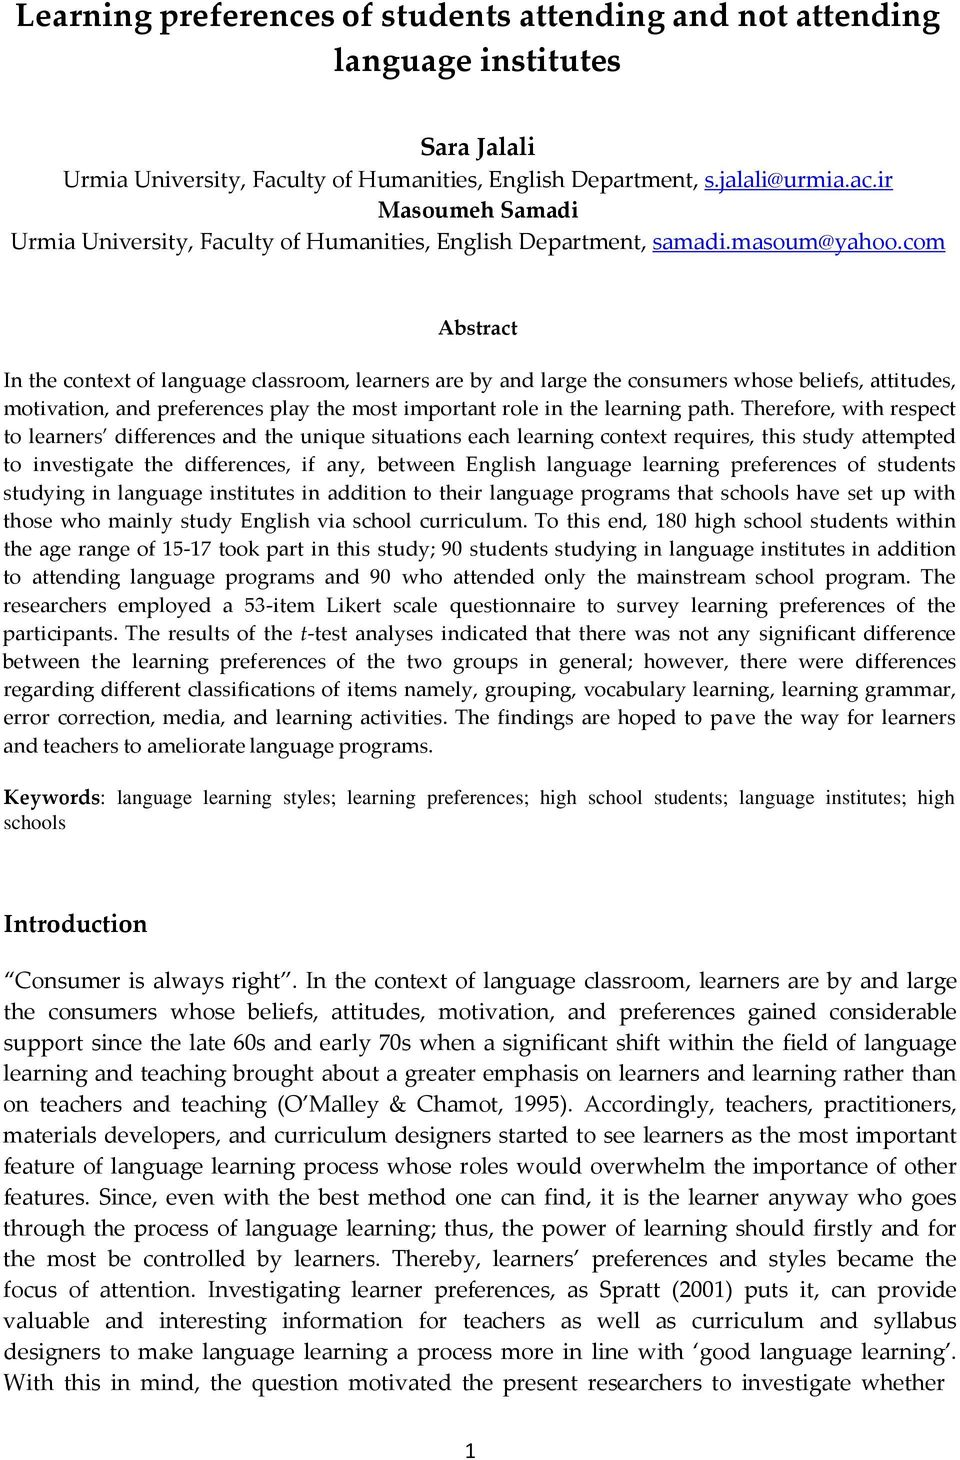 com Abstract In the context of language classroom, learners are by and large the consumers whose beliefs, attitudes, motivation, and preferences play the most important role in the learning path.